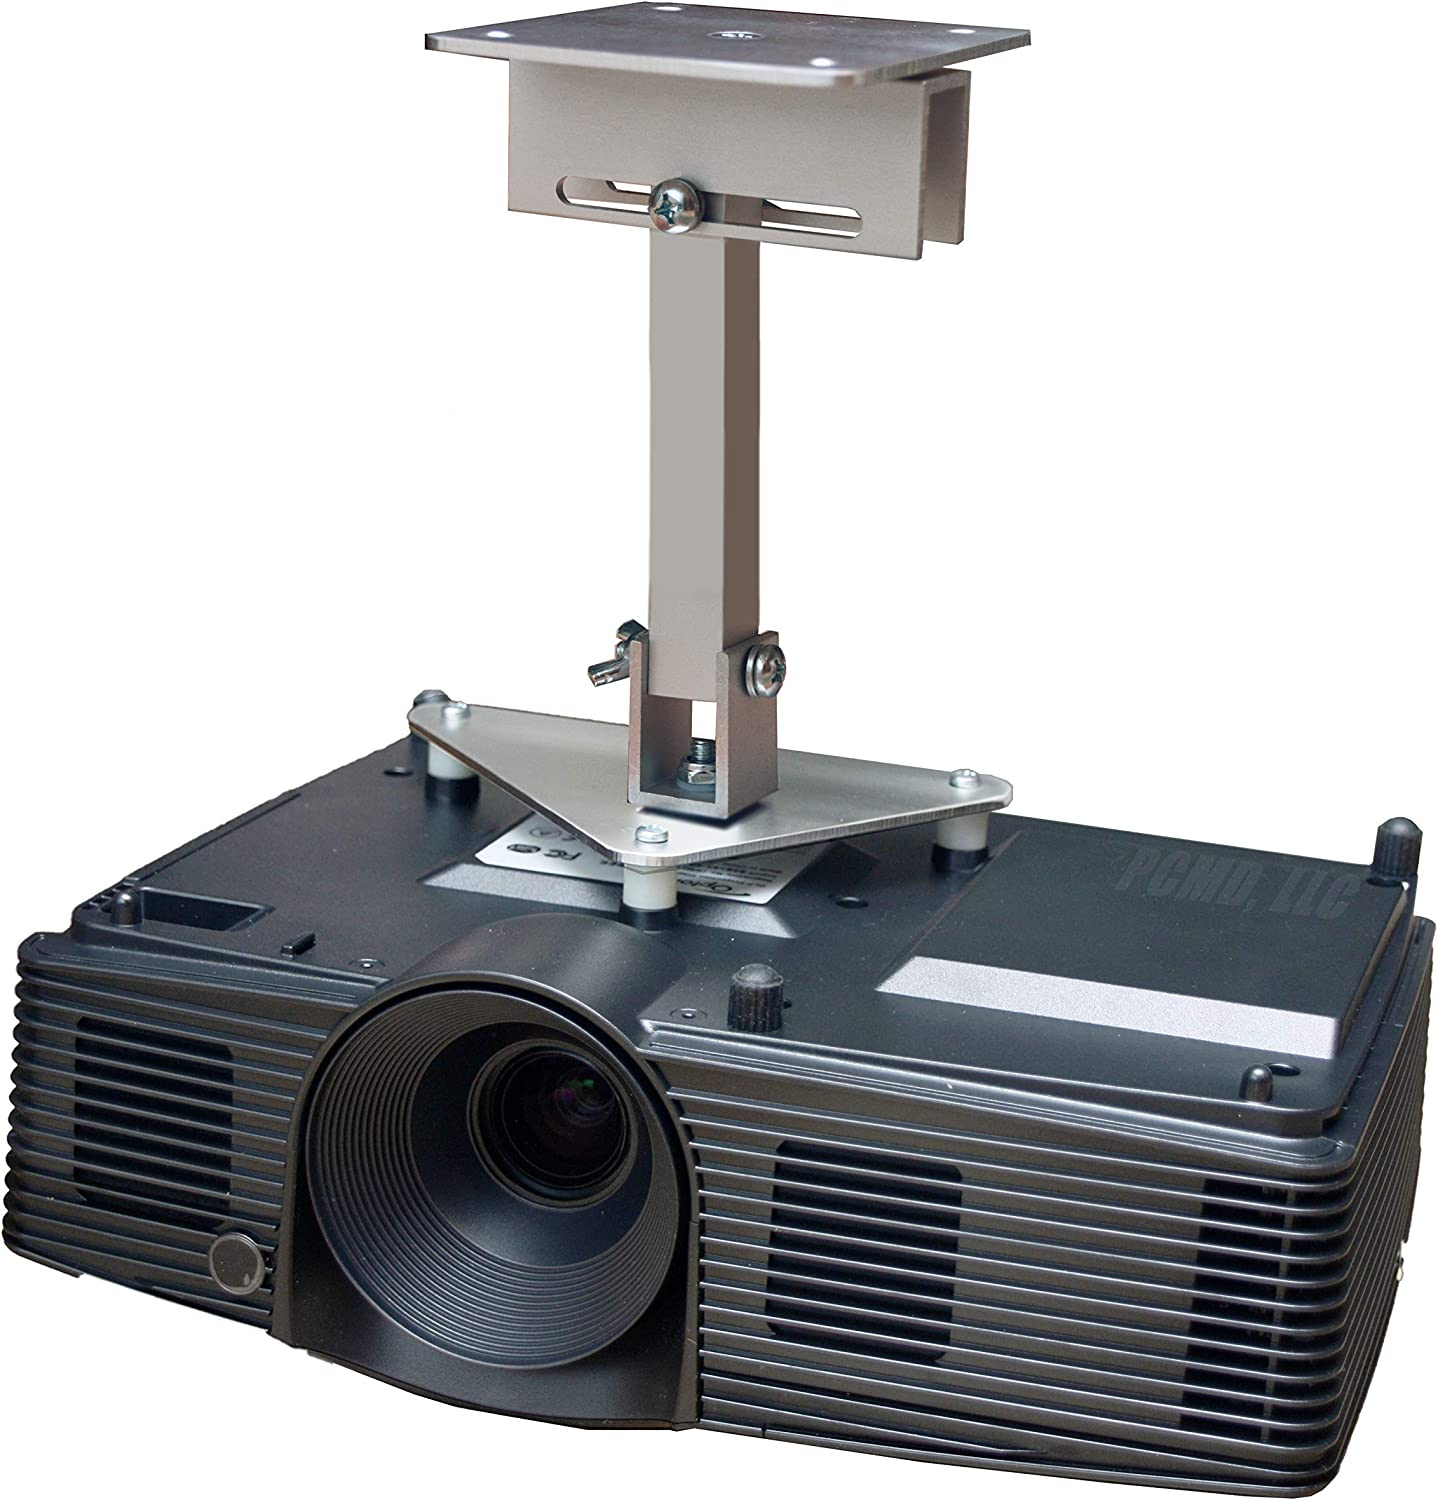 PCMD LLC. Projector Ceiling Mount with Outlet SALE MP-JU4 Maxell Compatible Today's only